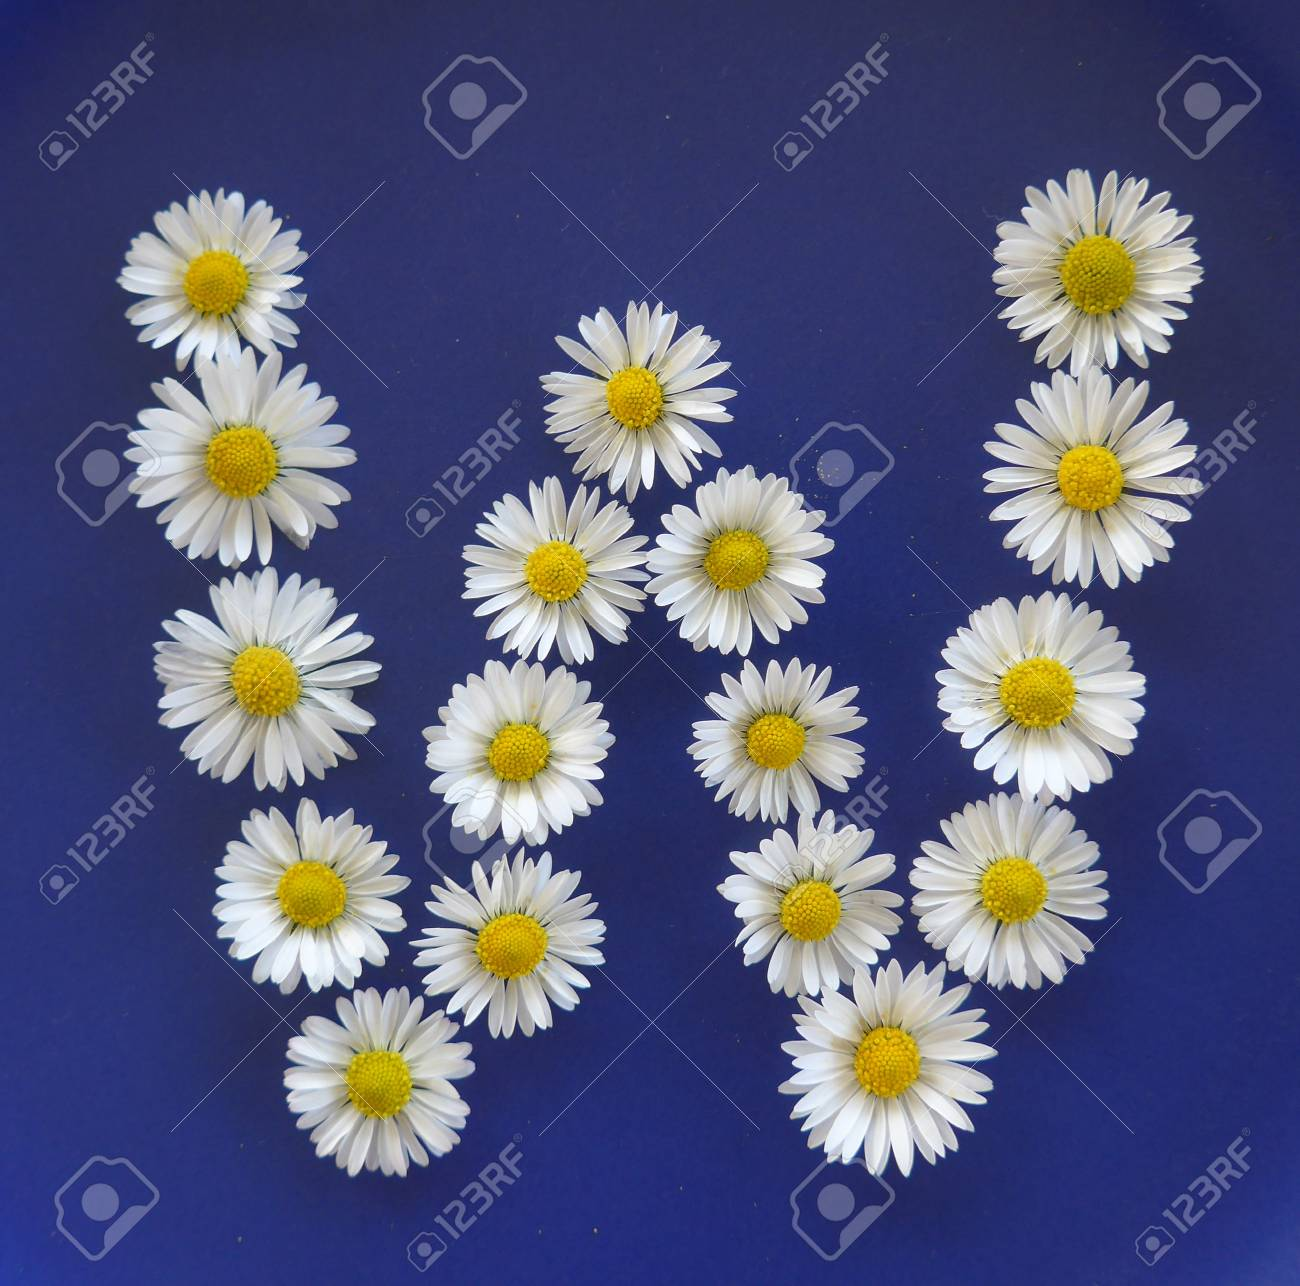 Letter w from white flowers daisies bellis perennis close up letter w from white flowers daisies bellis perennis close up on izmirmasajfo